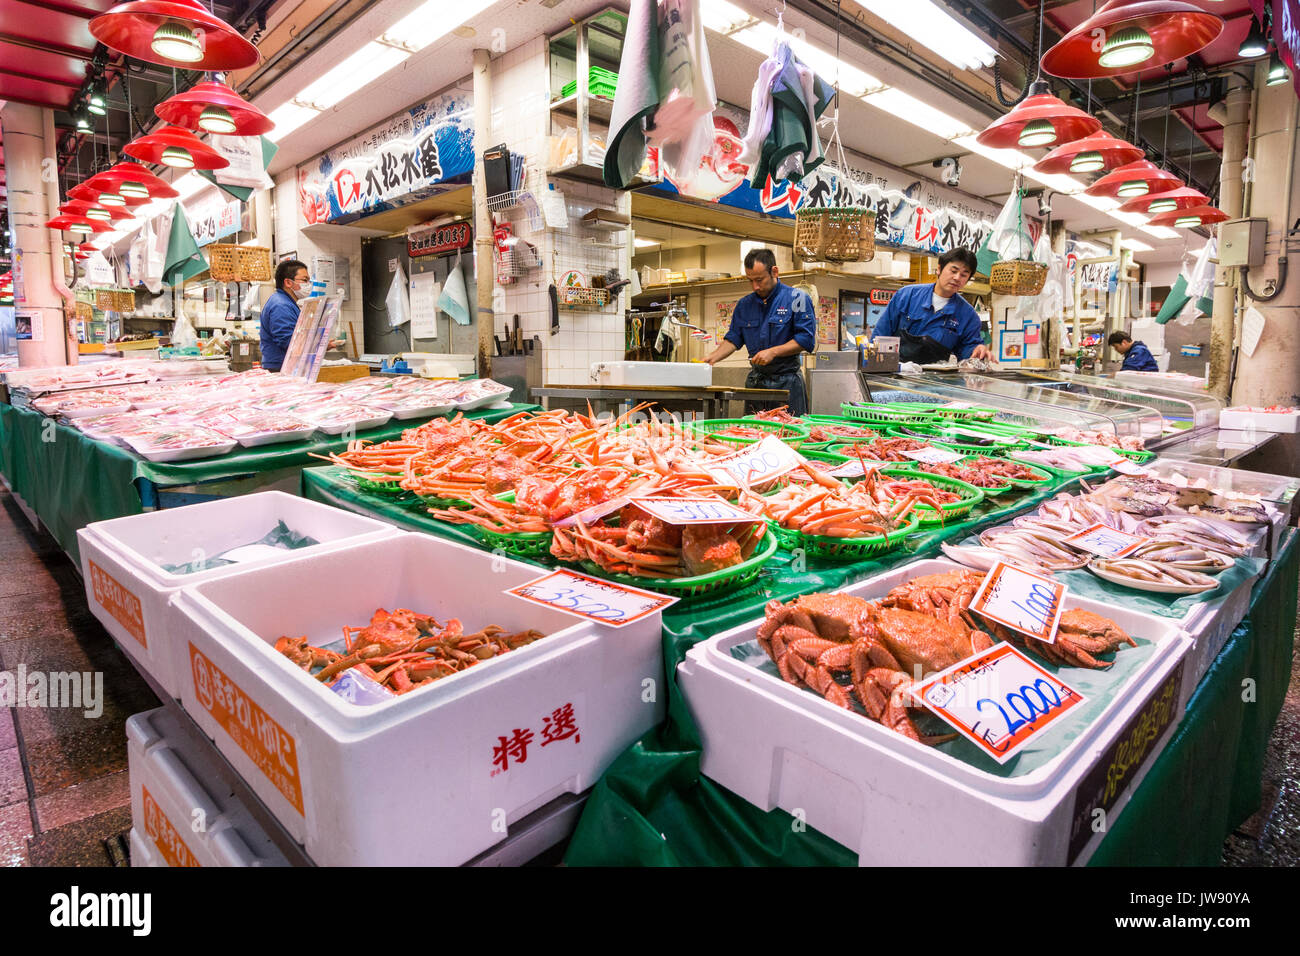 Containers filled with large orange crabs on sale on fish-mongers stall in the indoor fresh food market, Omicho, Kanazawa, Japan. - Stock Image